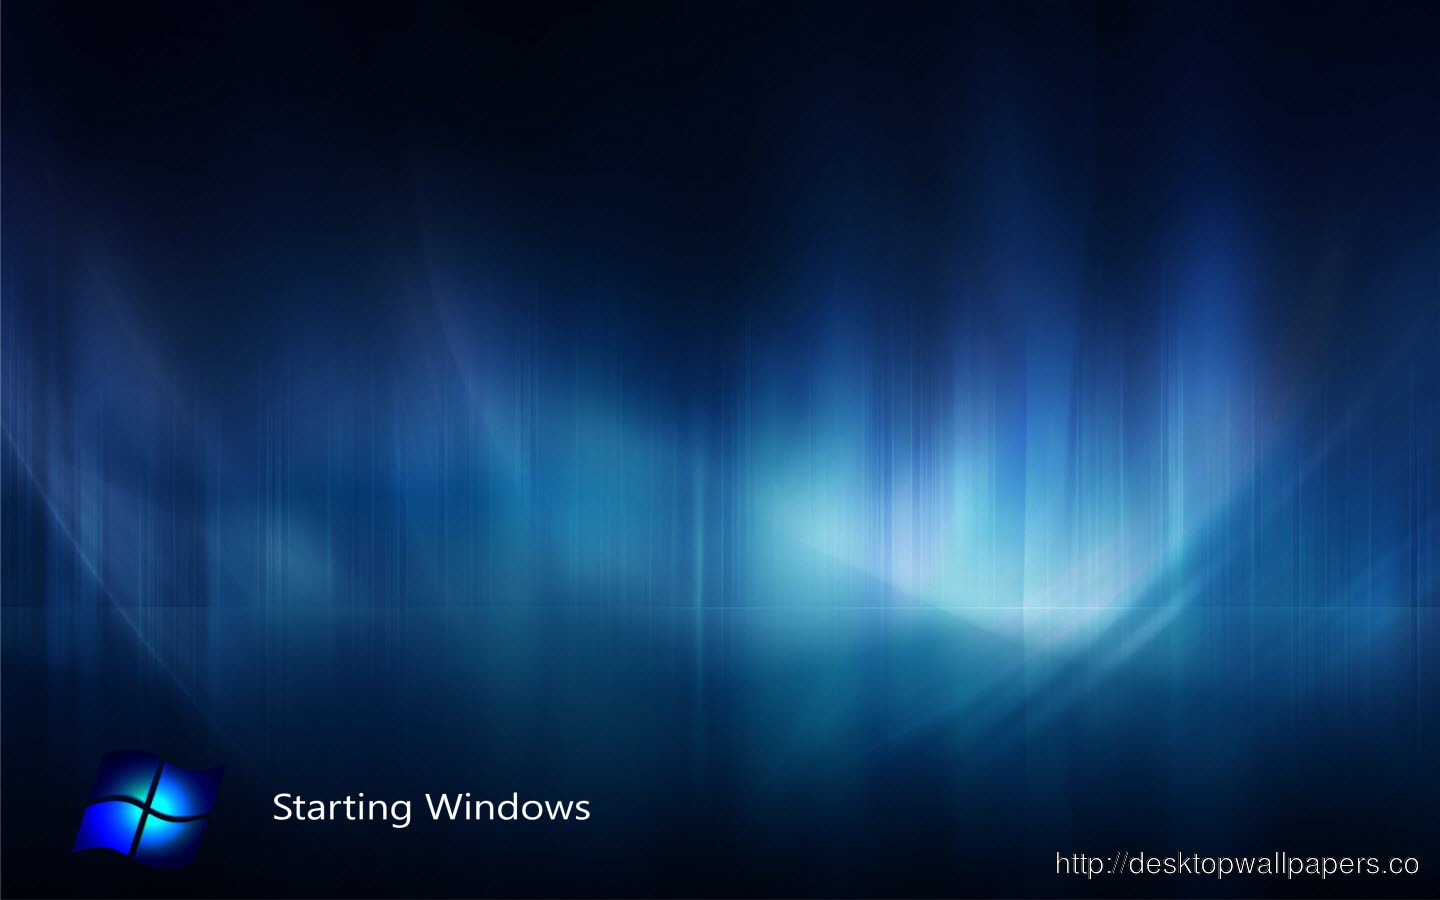 Microsoft WallpaperDesktop Wallpapers Download 1440x900